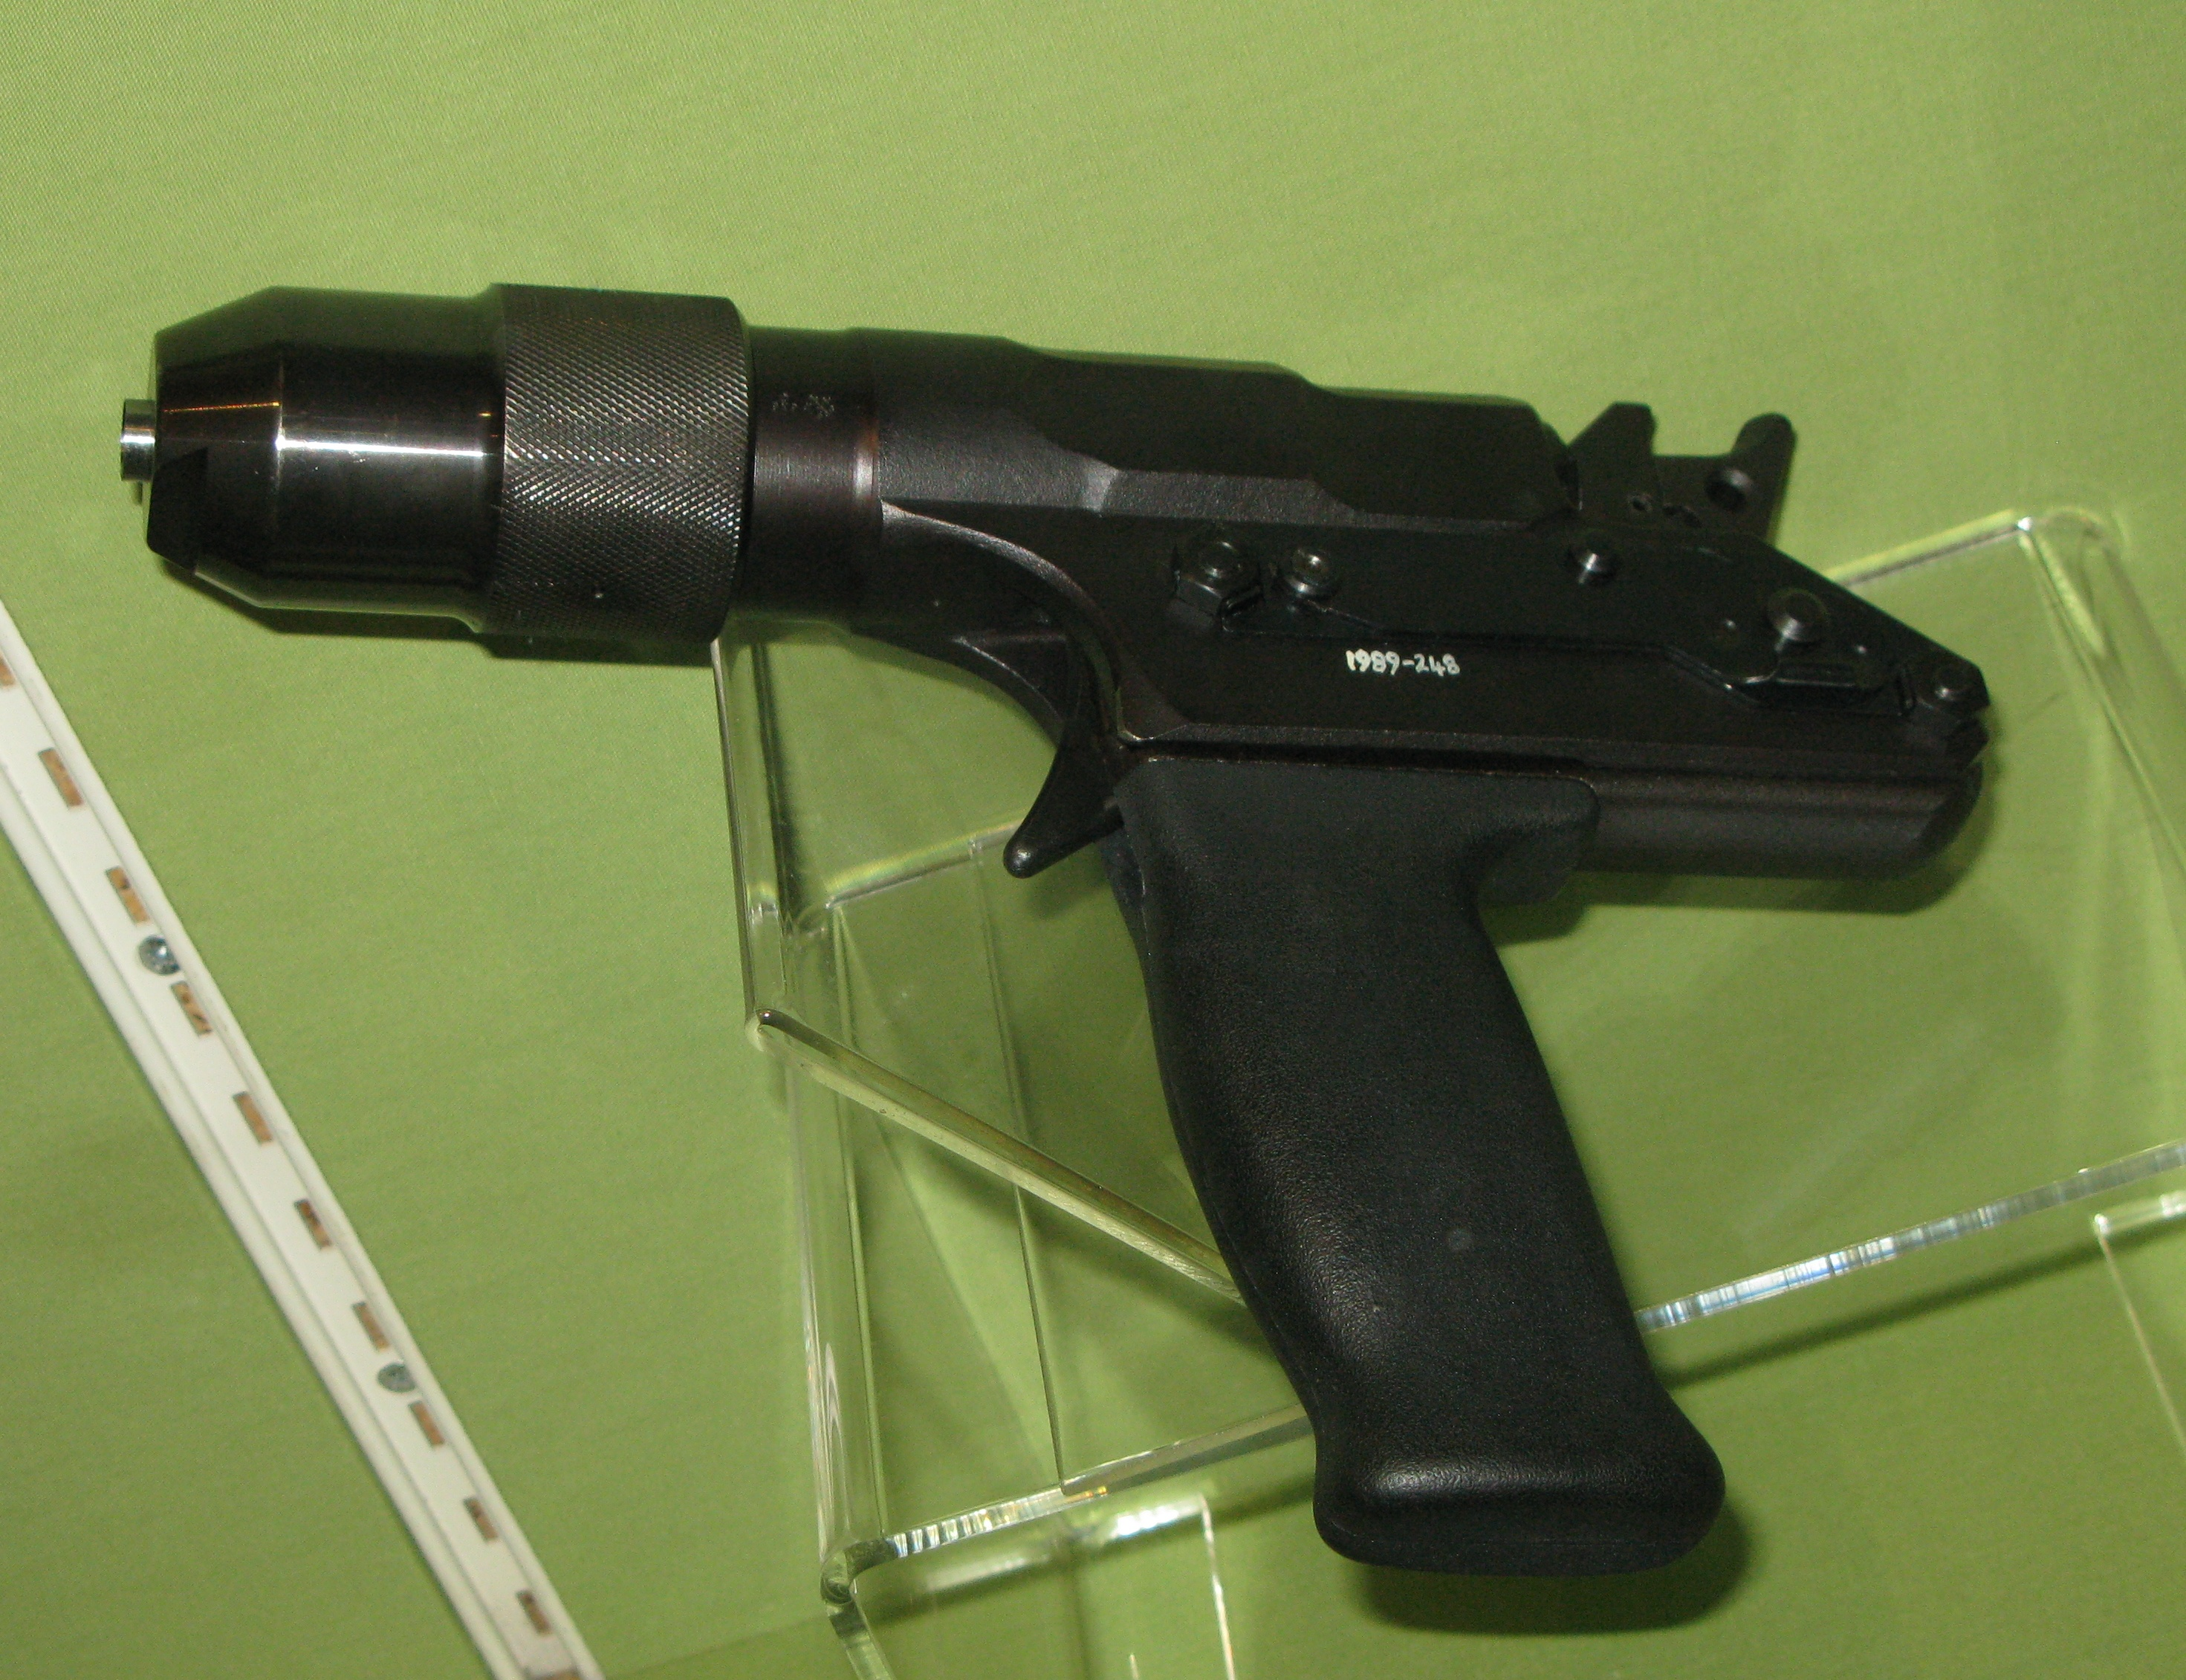 http://upload.wikimedia.org/wikipedia/commons/a/af/Cash%27s_captive_bolt_pistol.jpg